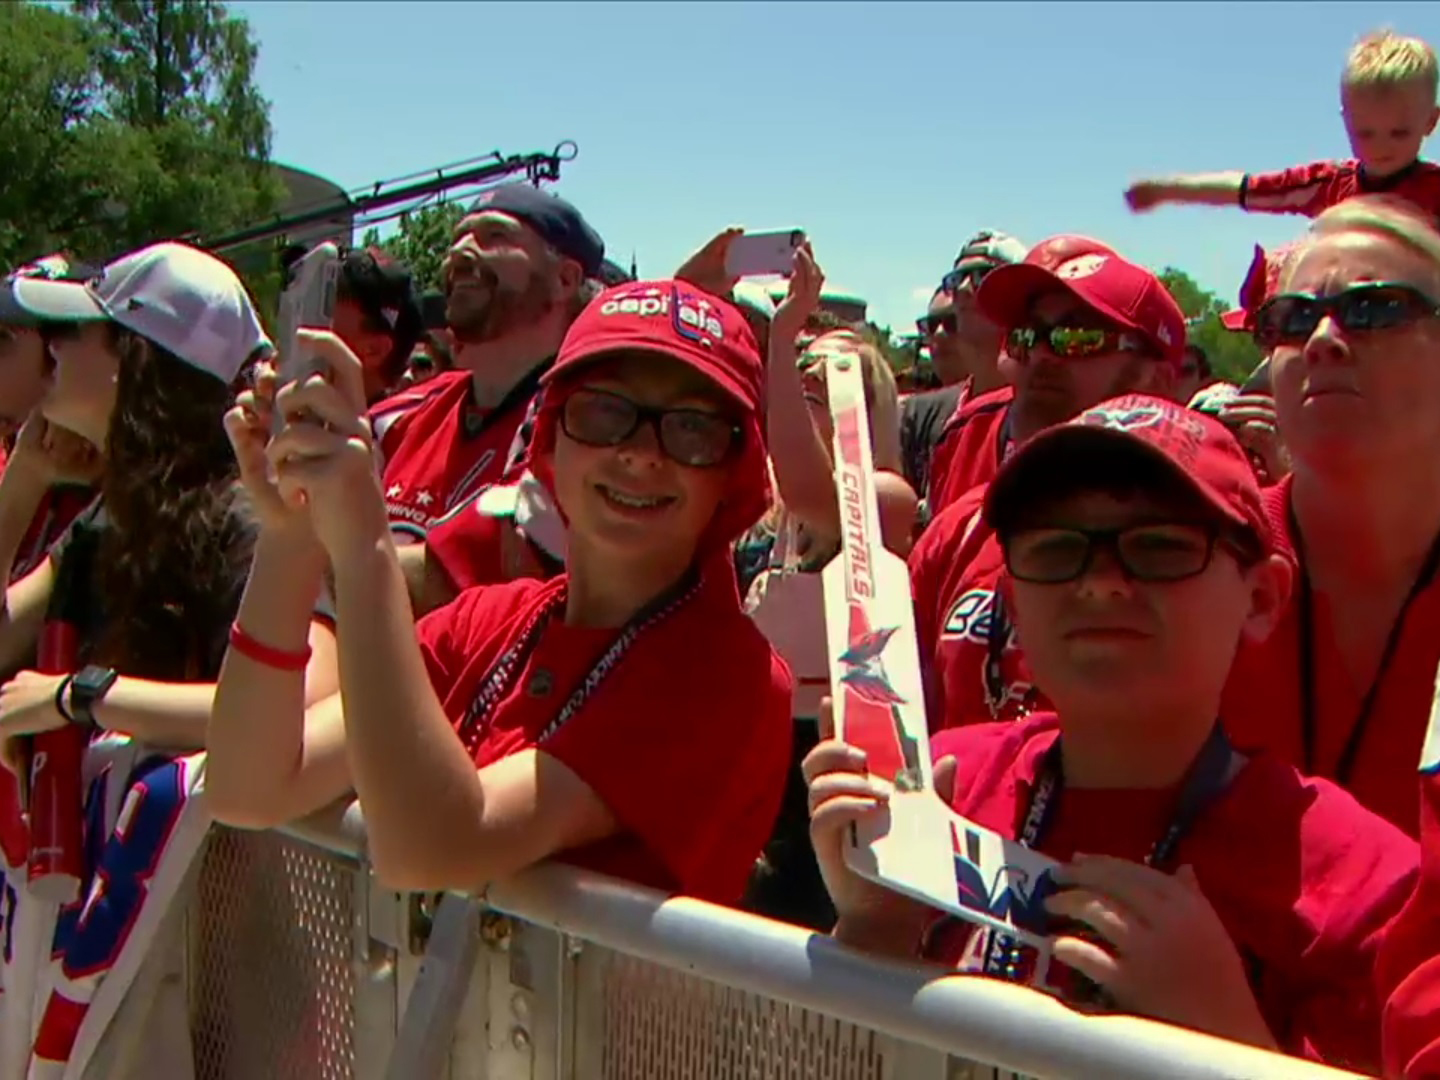 Crowd Stands Behind SONCO Stage Barriers at the Washington Capital's Stanley Cup Champions Parade